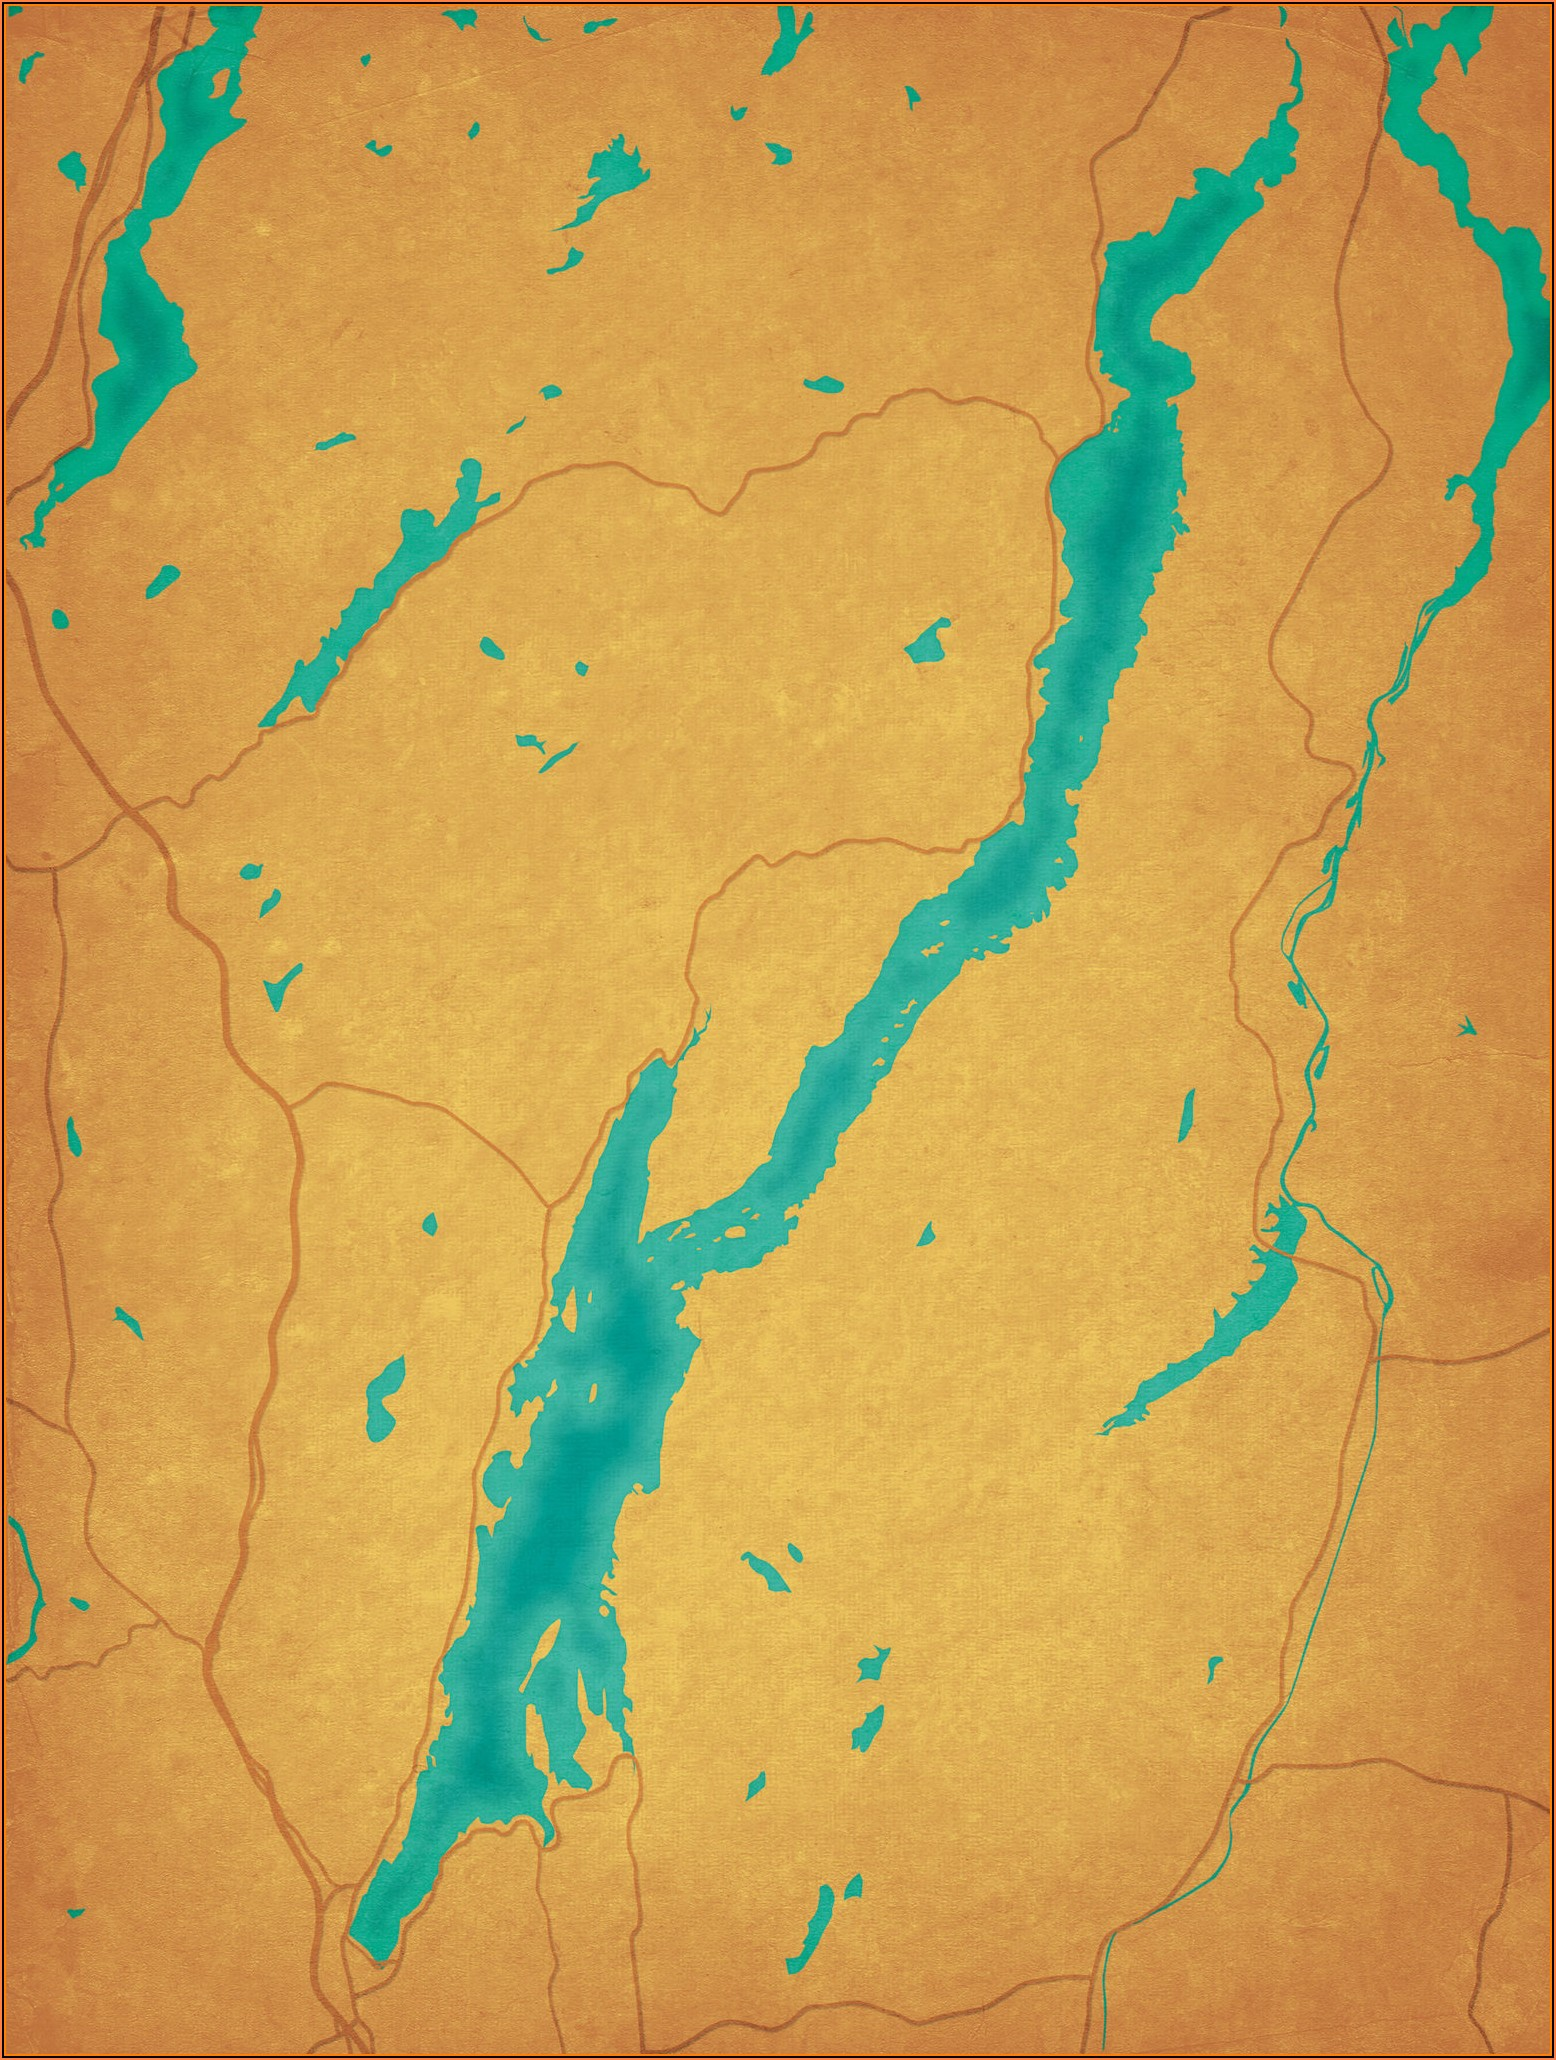 Lake George Indiana Topographic Map